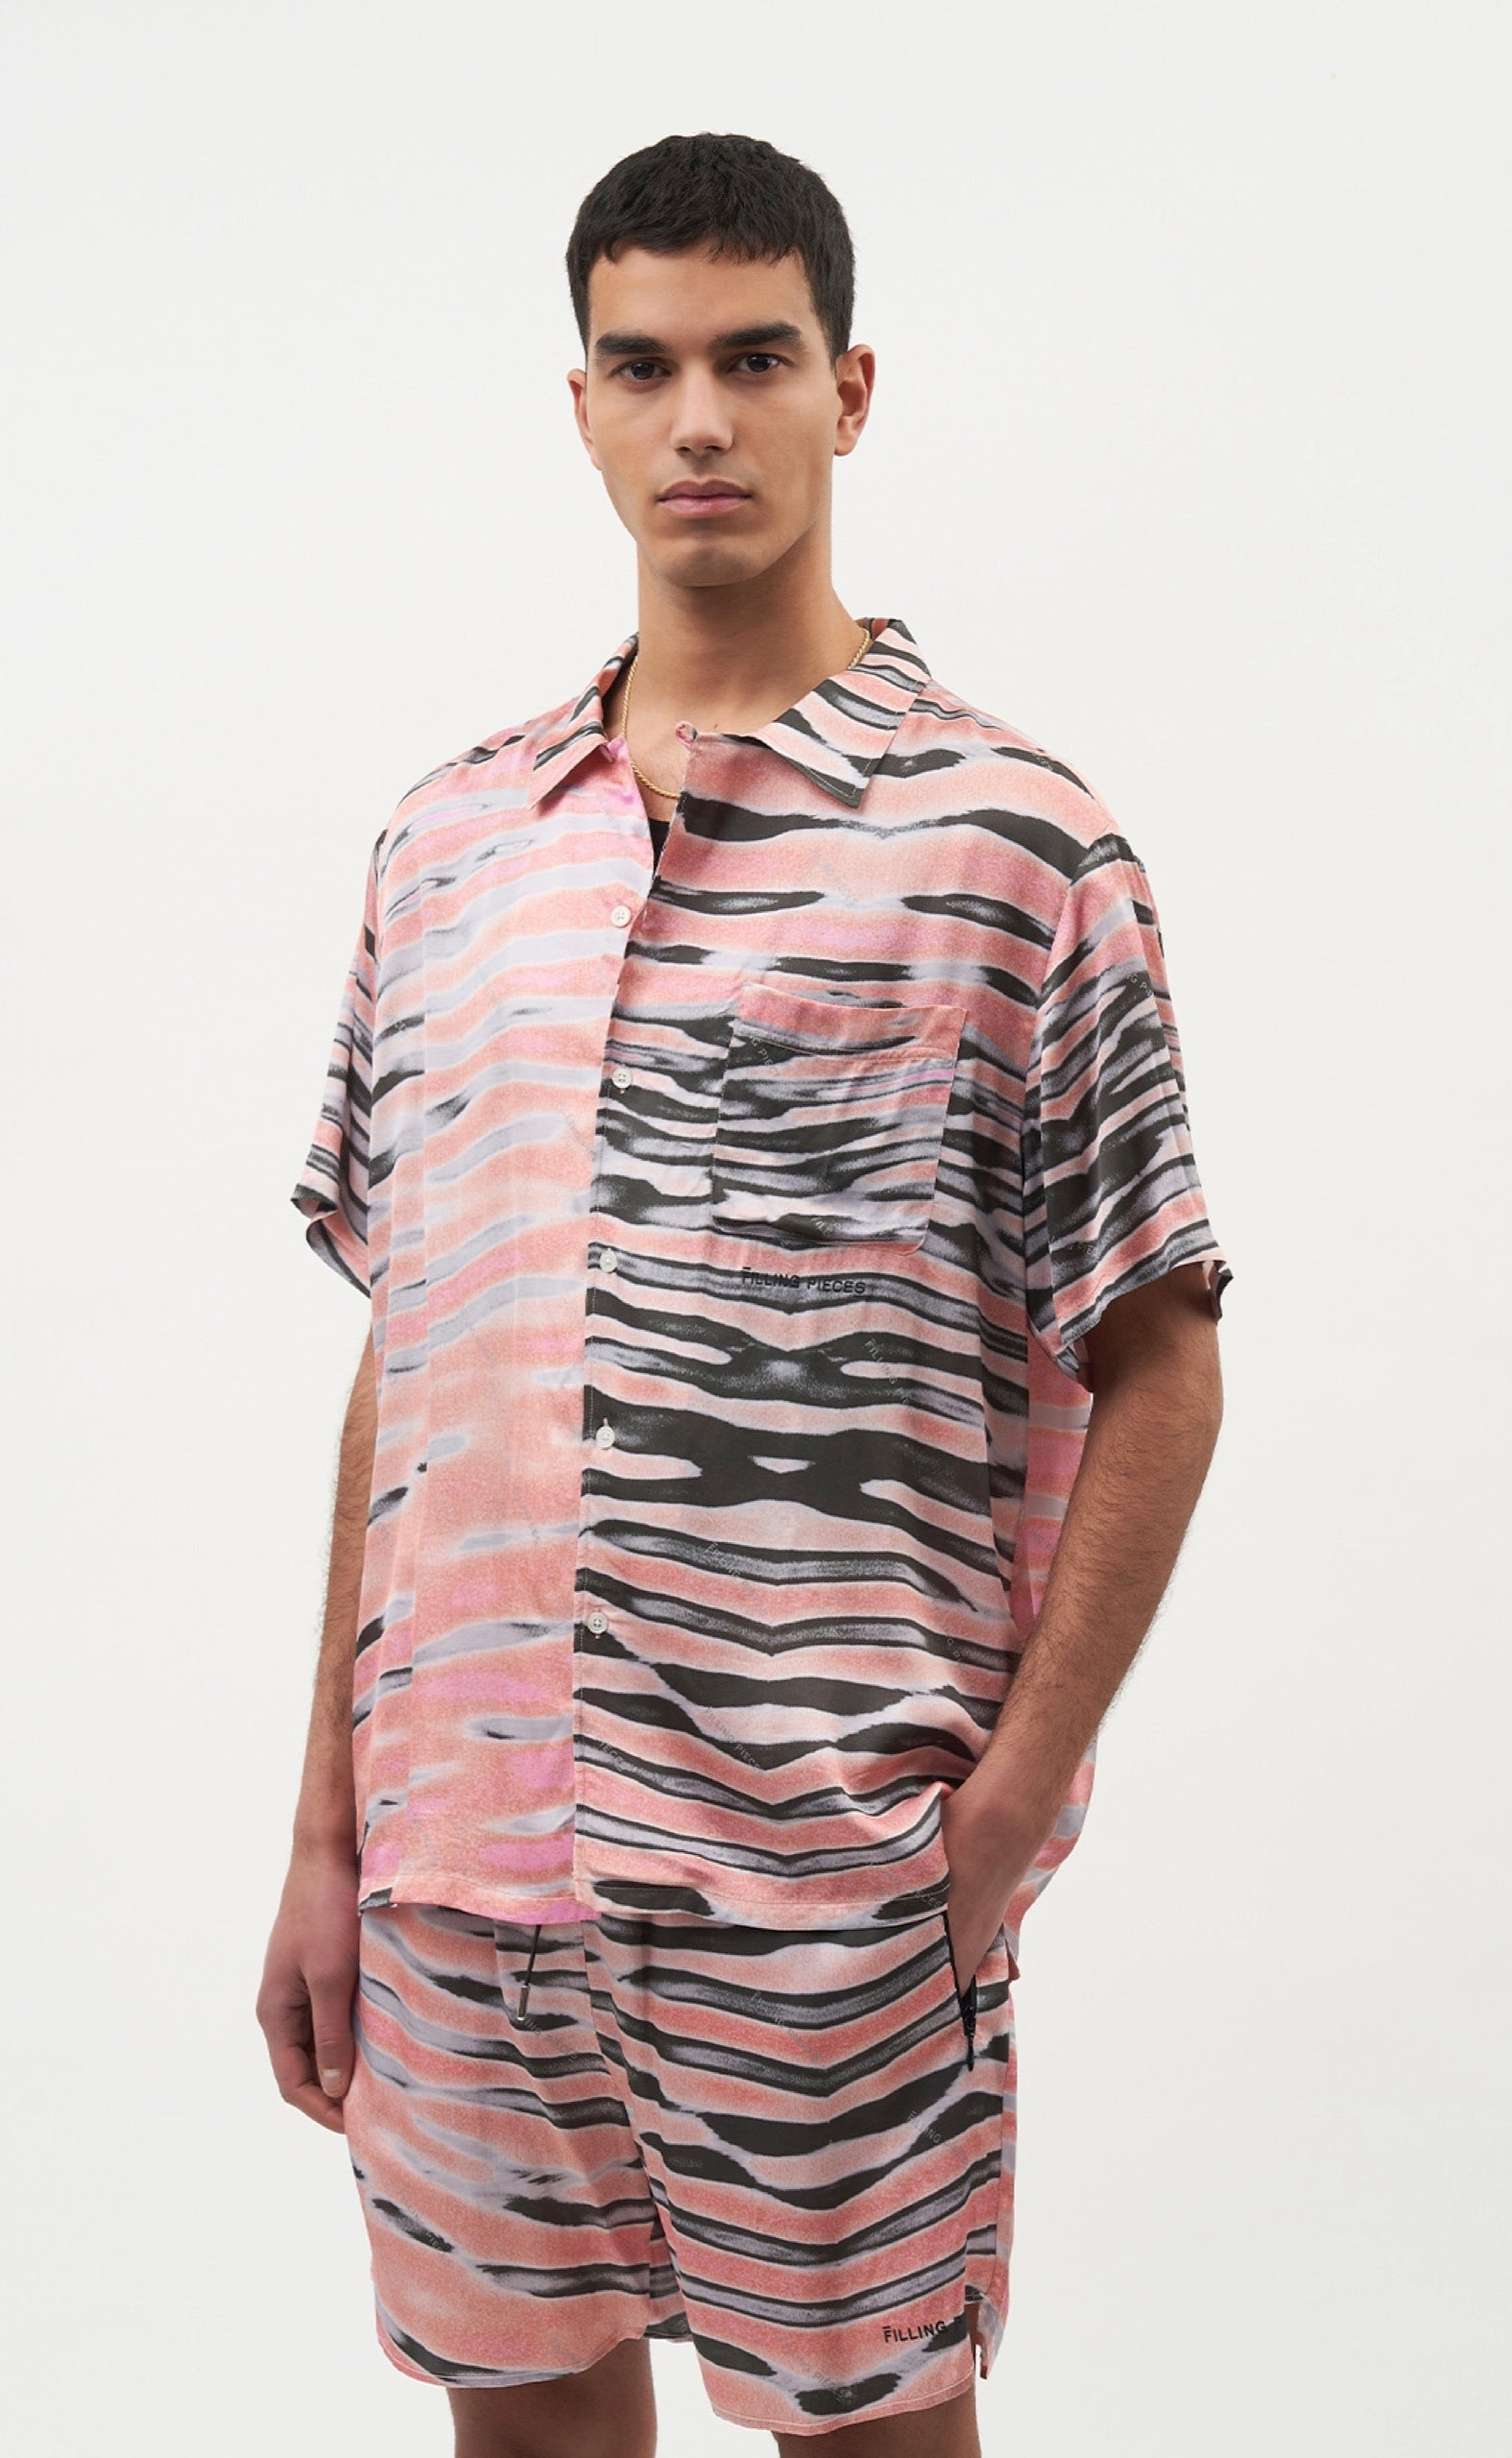 Printed Resort Shirt Pink Wavey - men